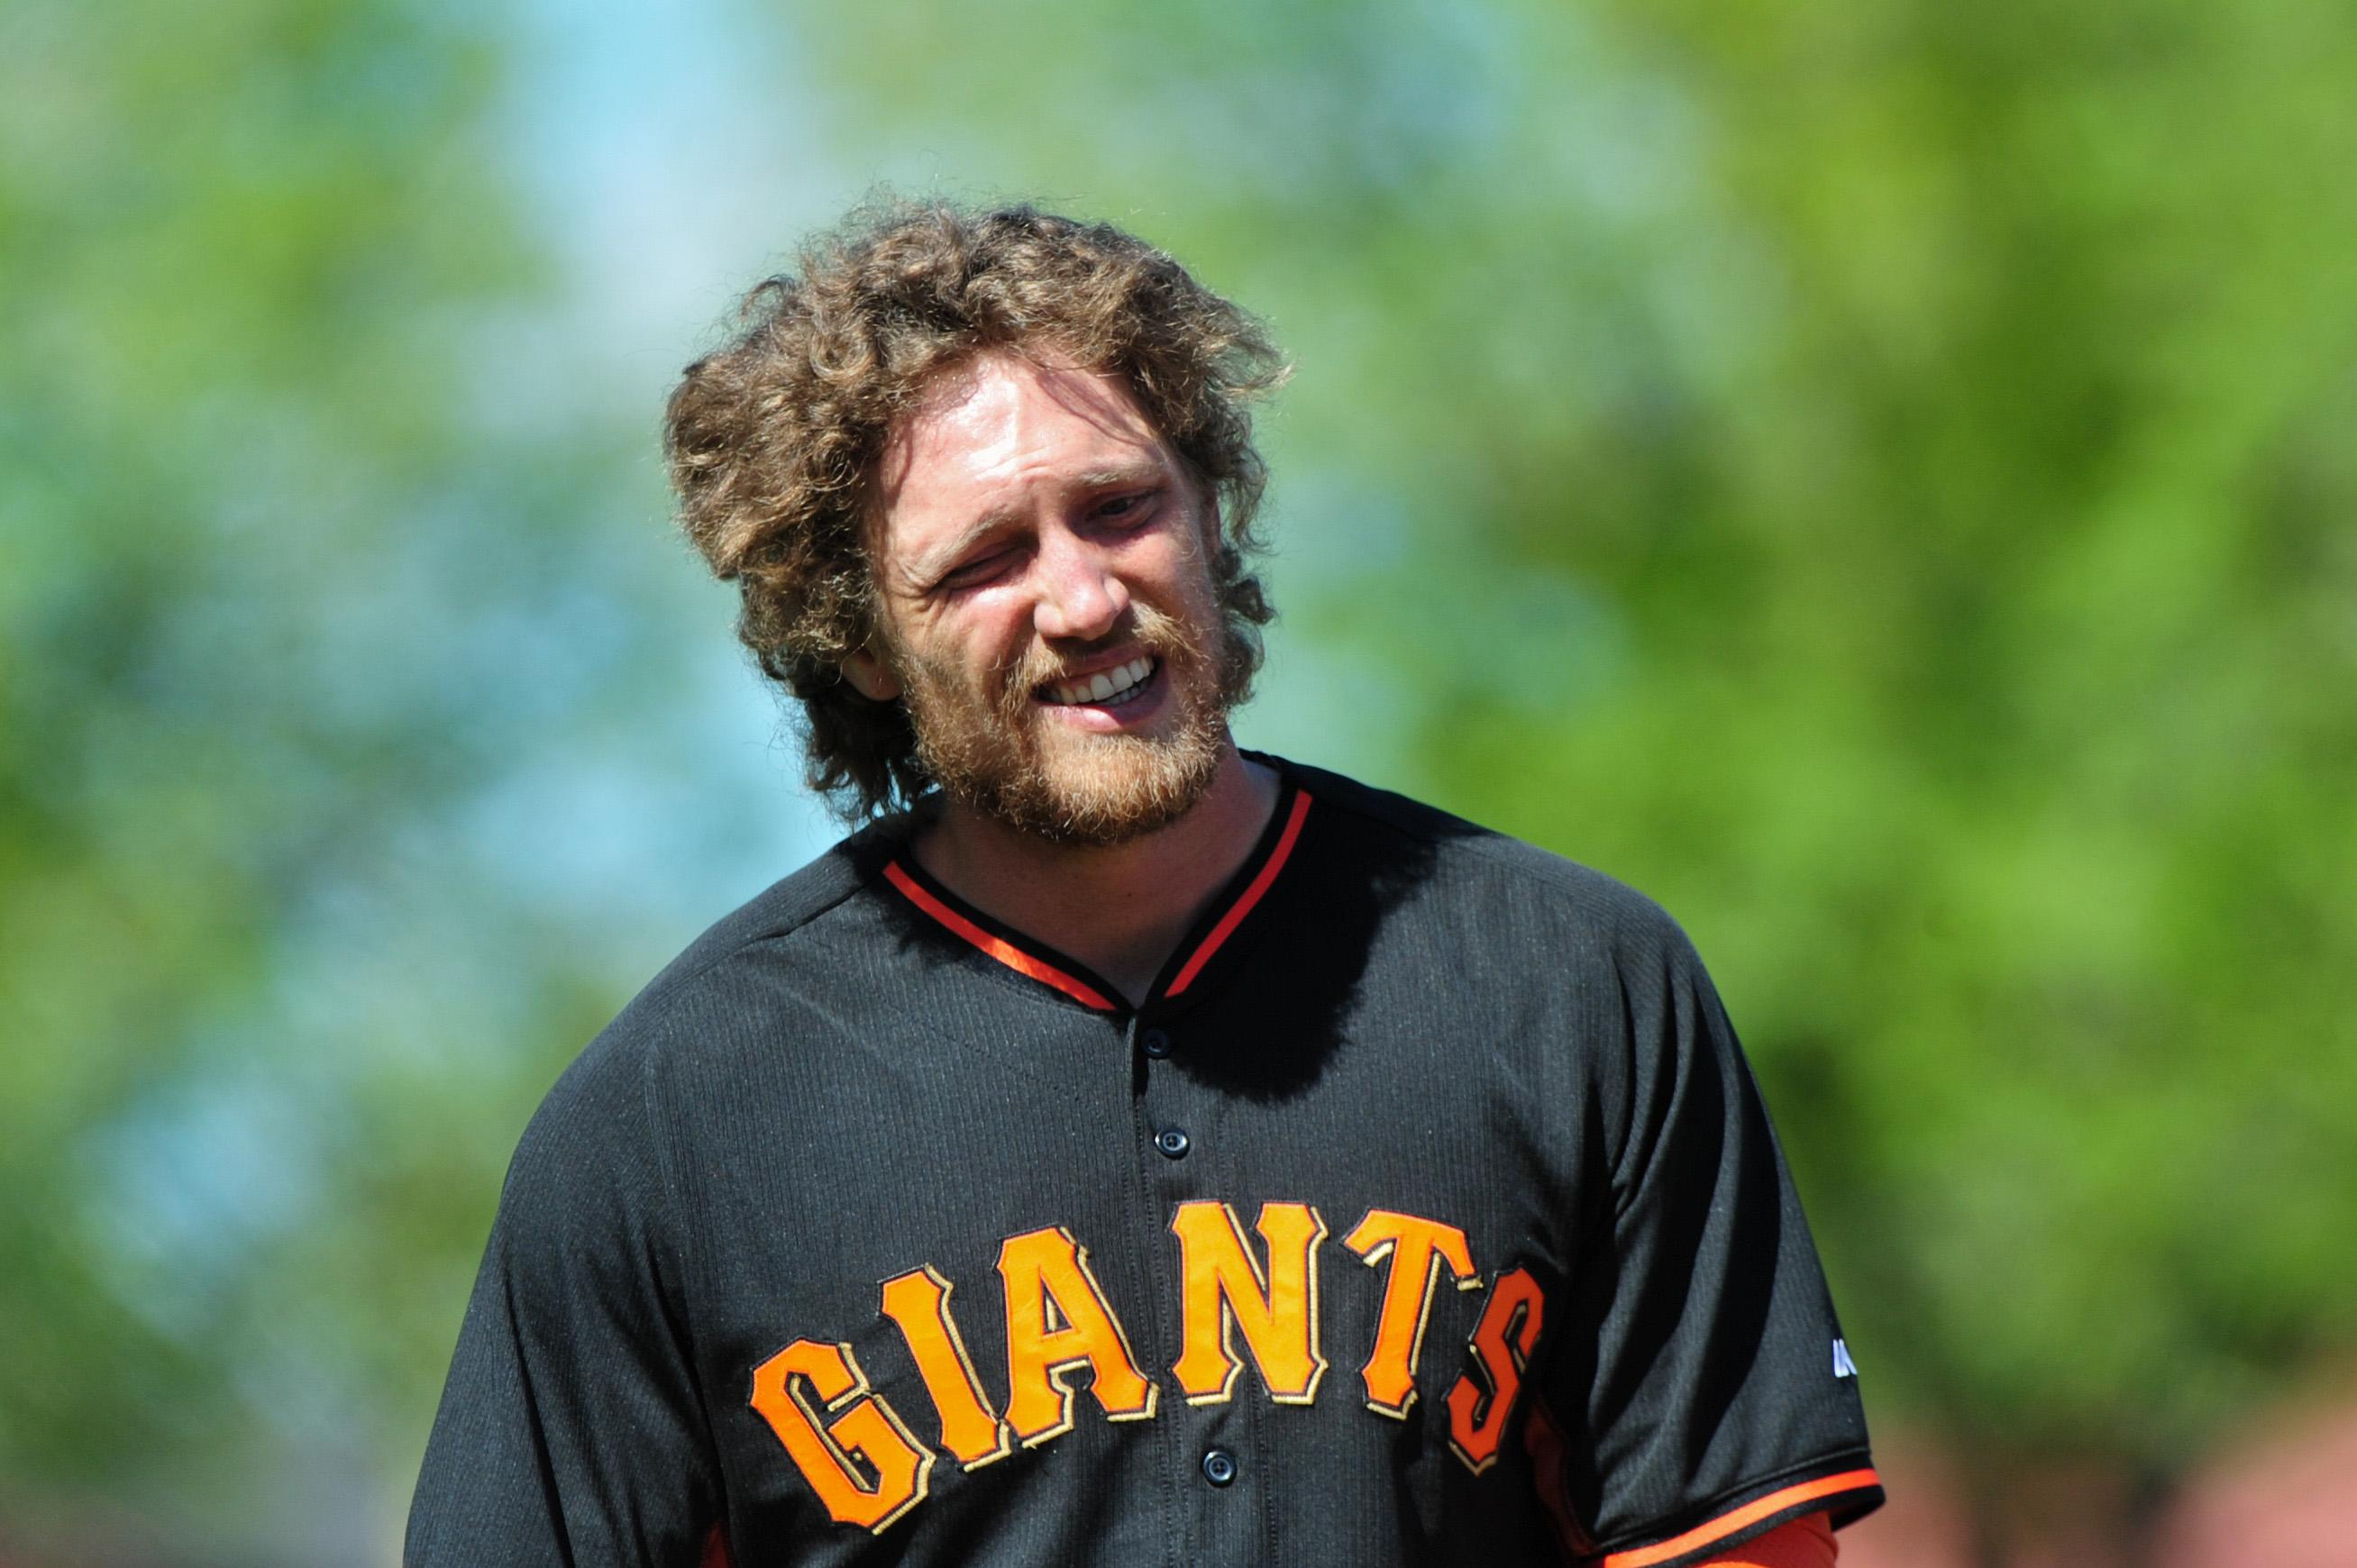 Hunter Pence attempts to ease mind of pitcher who broke his arm